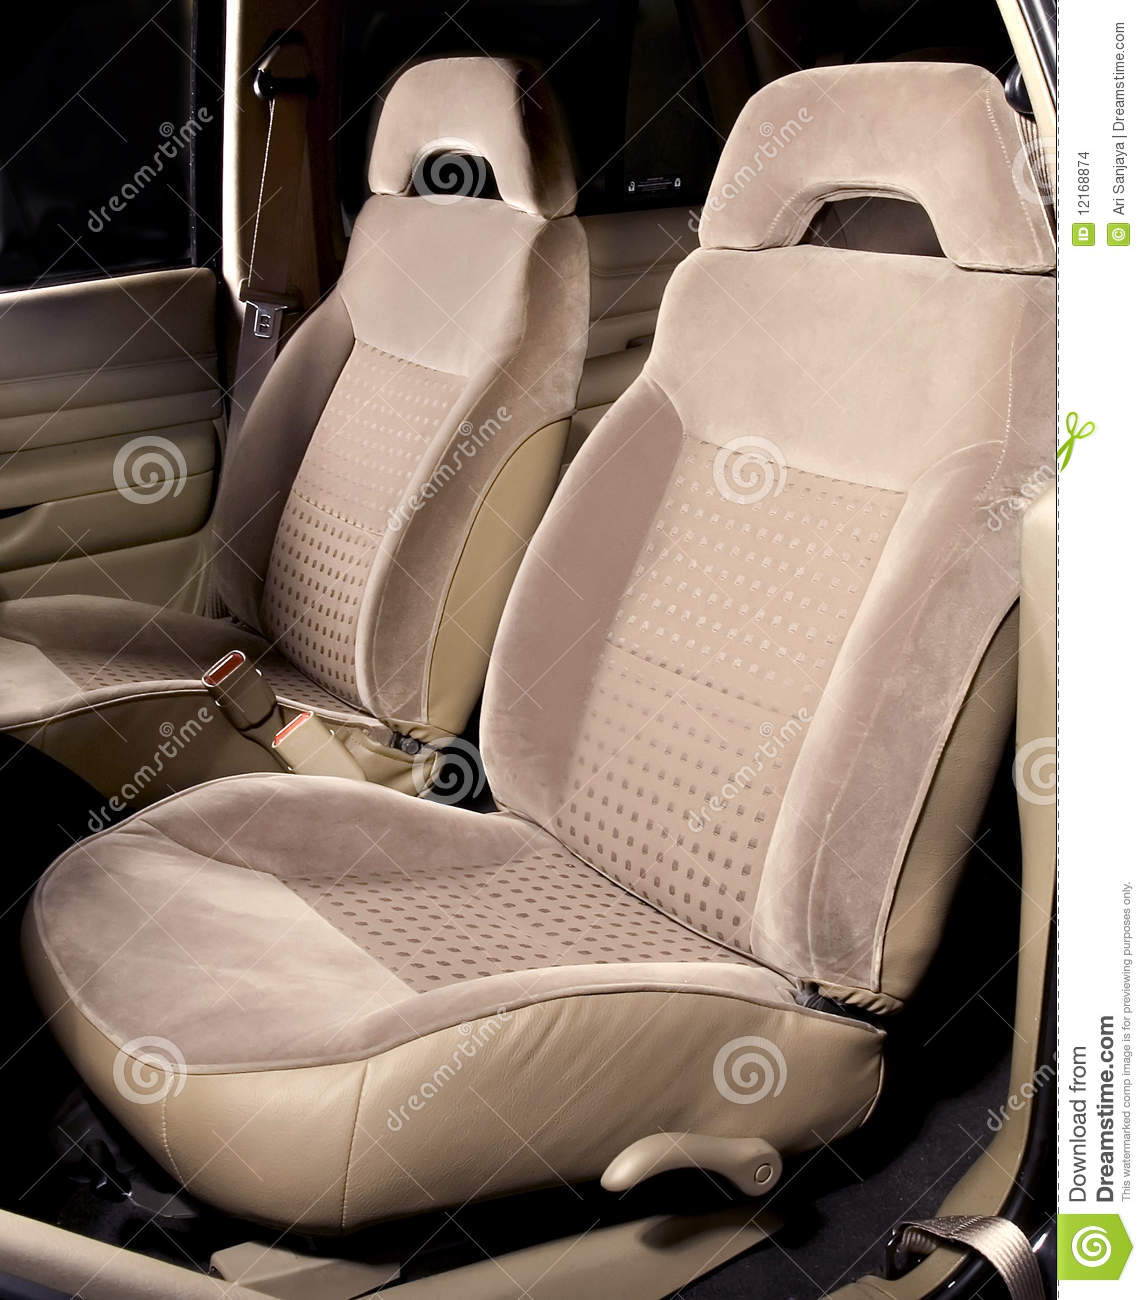 car back seats interior stock images image 12168874. Black Bedroom Furniture Sets. Home Design Ideas